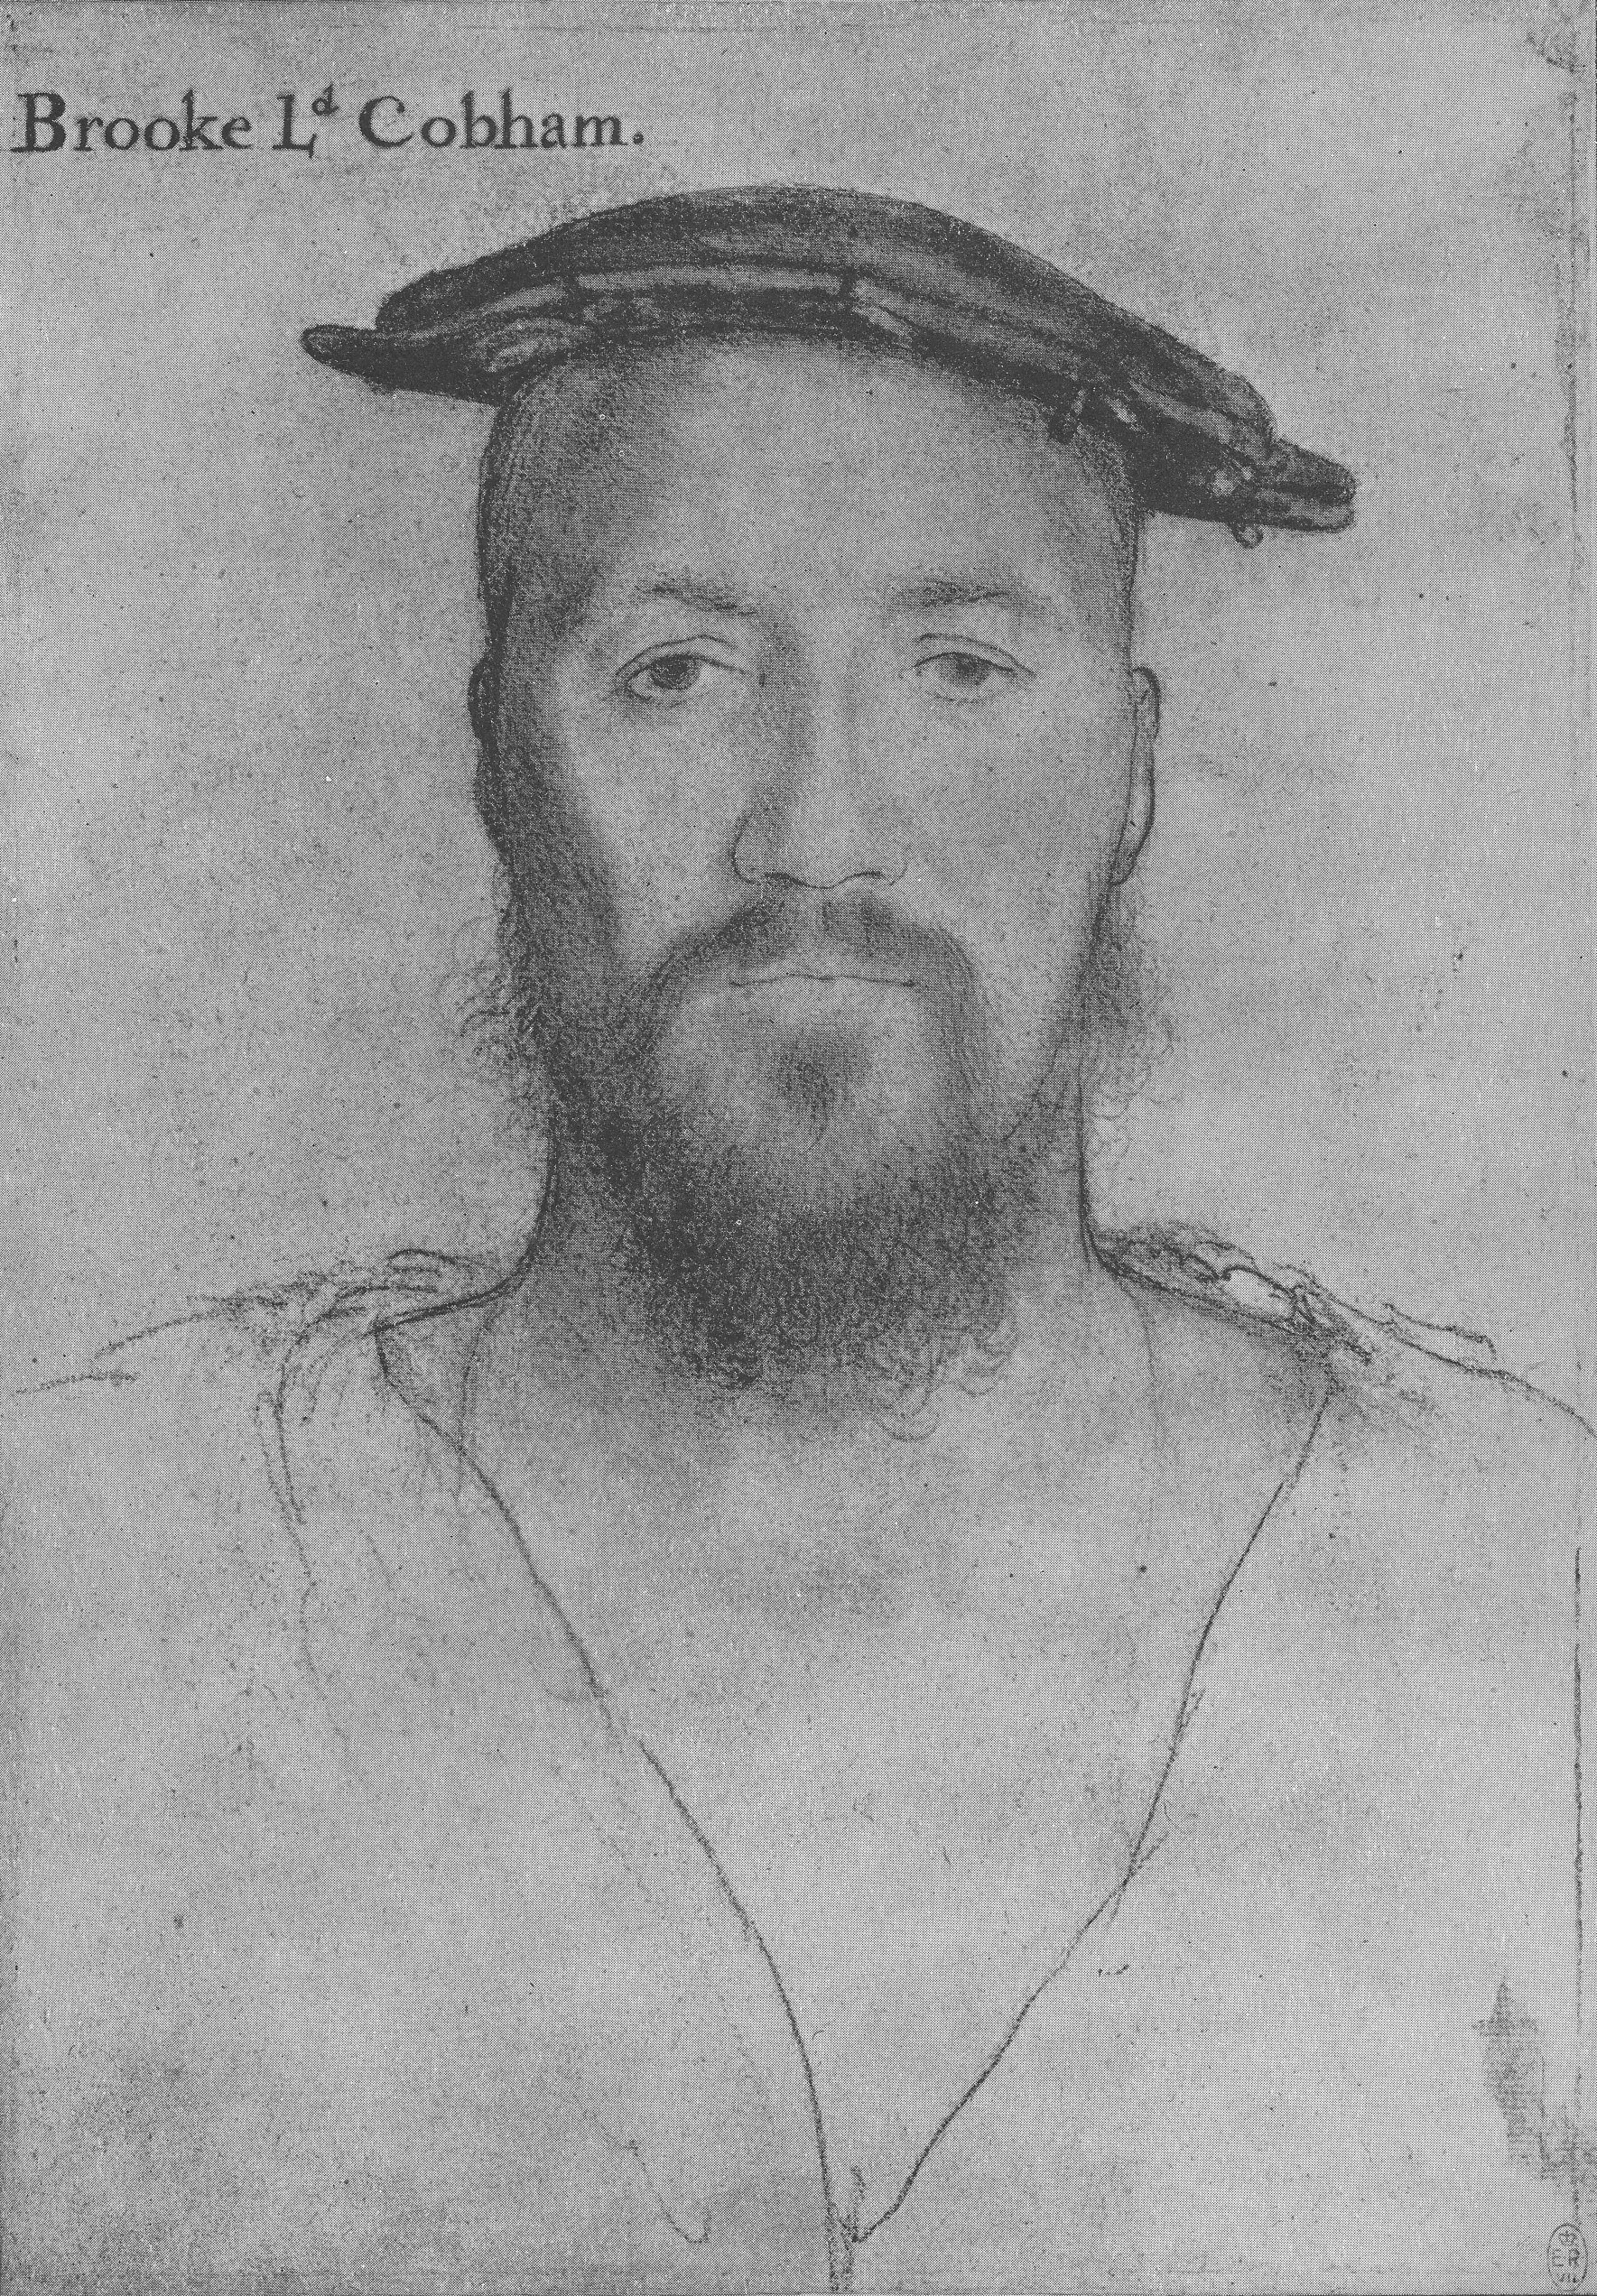 Portrait of George Brooke, 9th Baron Cobham. c.1538-40